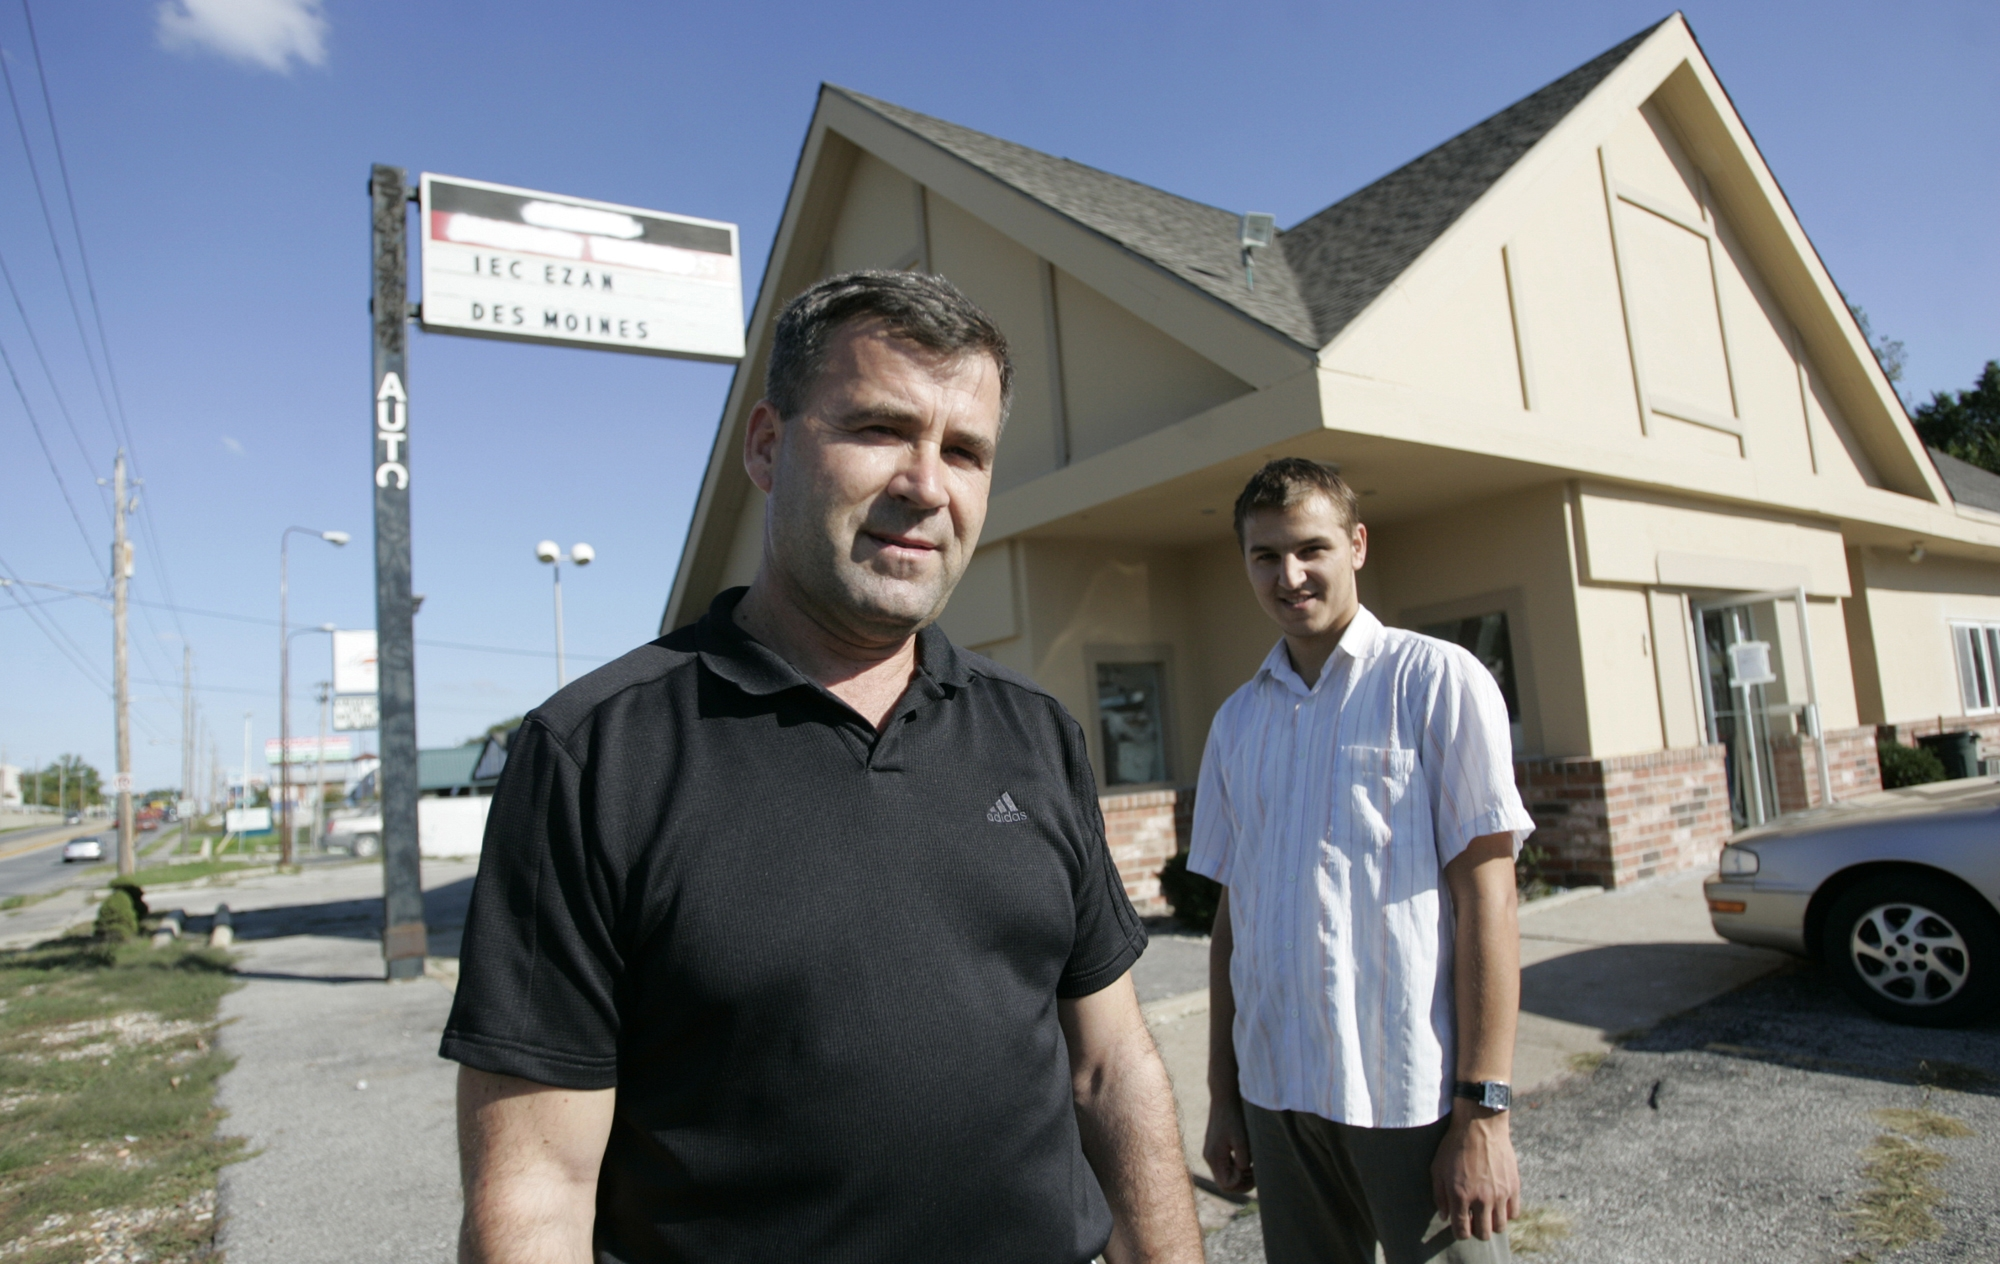 Nihat Rahic,of West Des Moines, and Emir Huskanovic, of Bosnia, right, stand in front of the new Islamic Education Center in Des Moines, Iowa on Sept. 18, 2008.